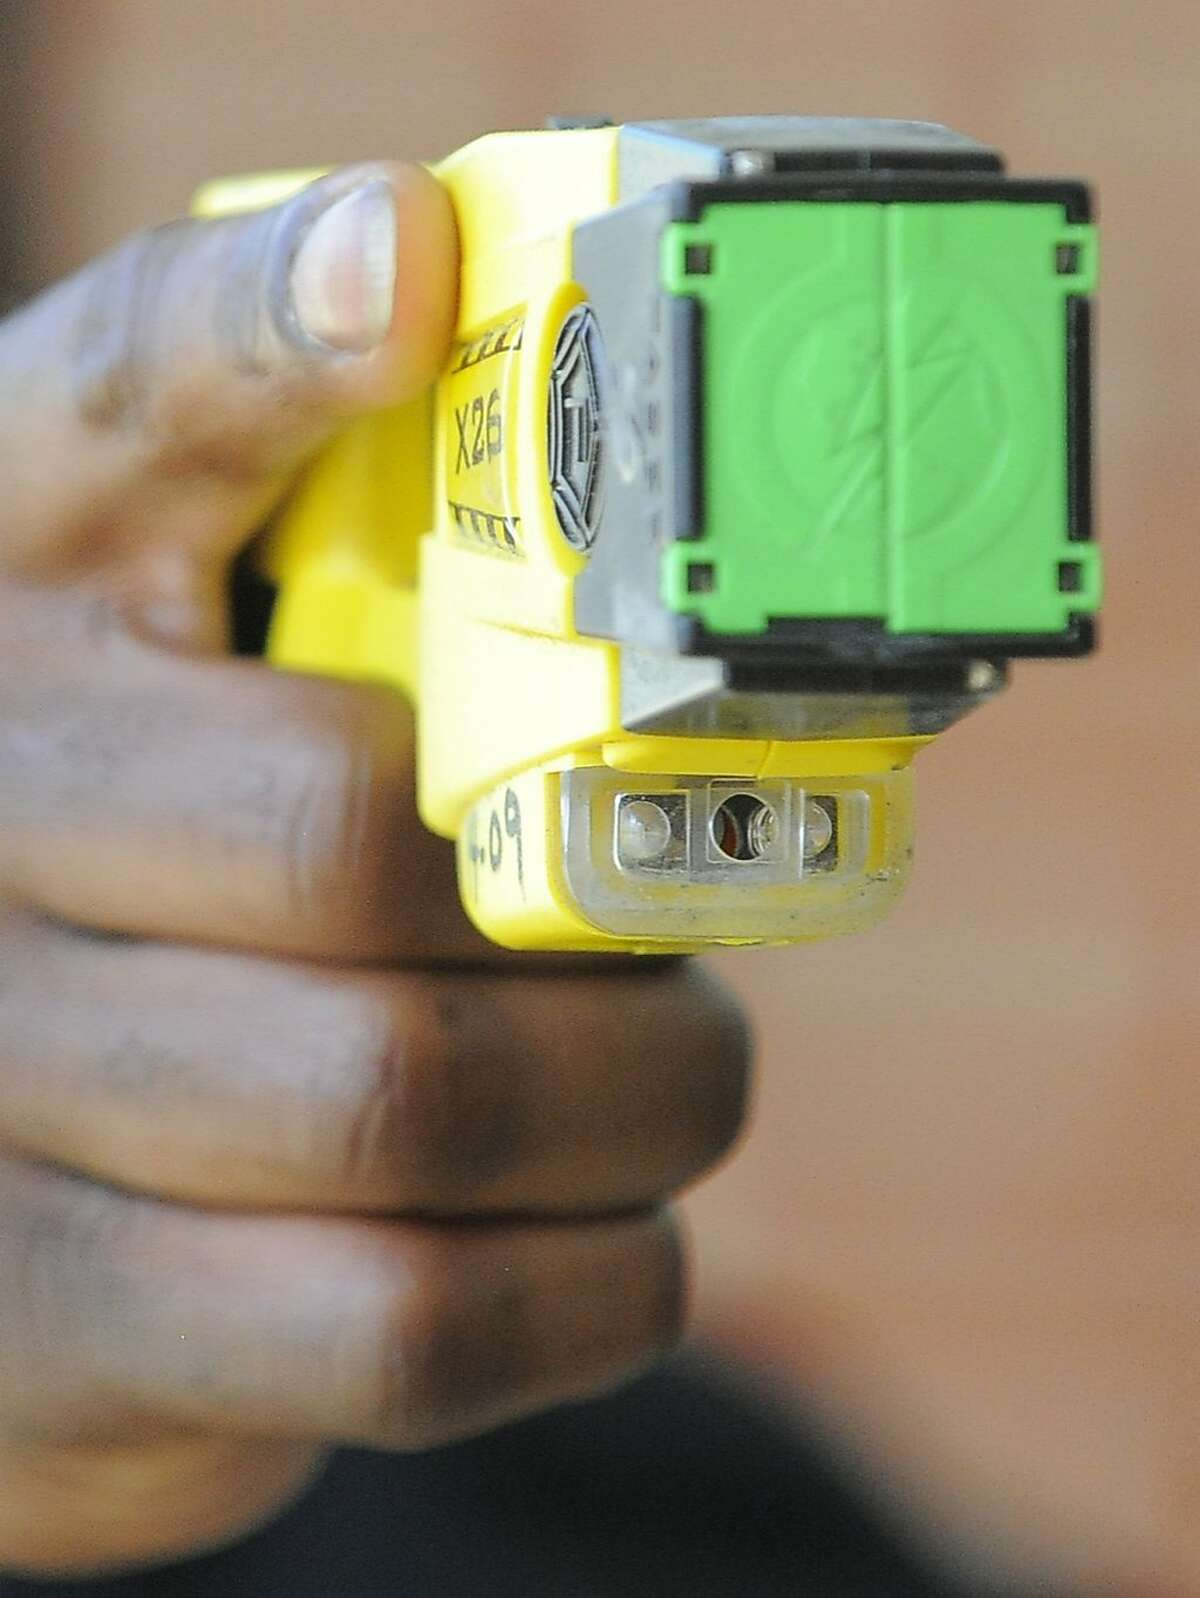 A Stamford Police Officer holds a Taser X26 Stun Gun on April 1, 2016. Blacks and Hispanics are shot with stun guns more often in Connecticut, while whites are given the benefit of a warning far more often, a Hearst review of state data from 2015 shows. Stamford police, however, only shot three people with a stun gun last year.